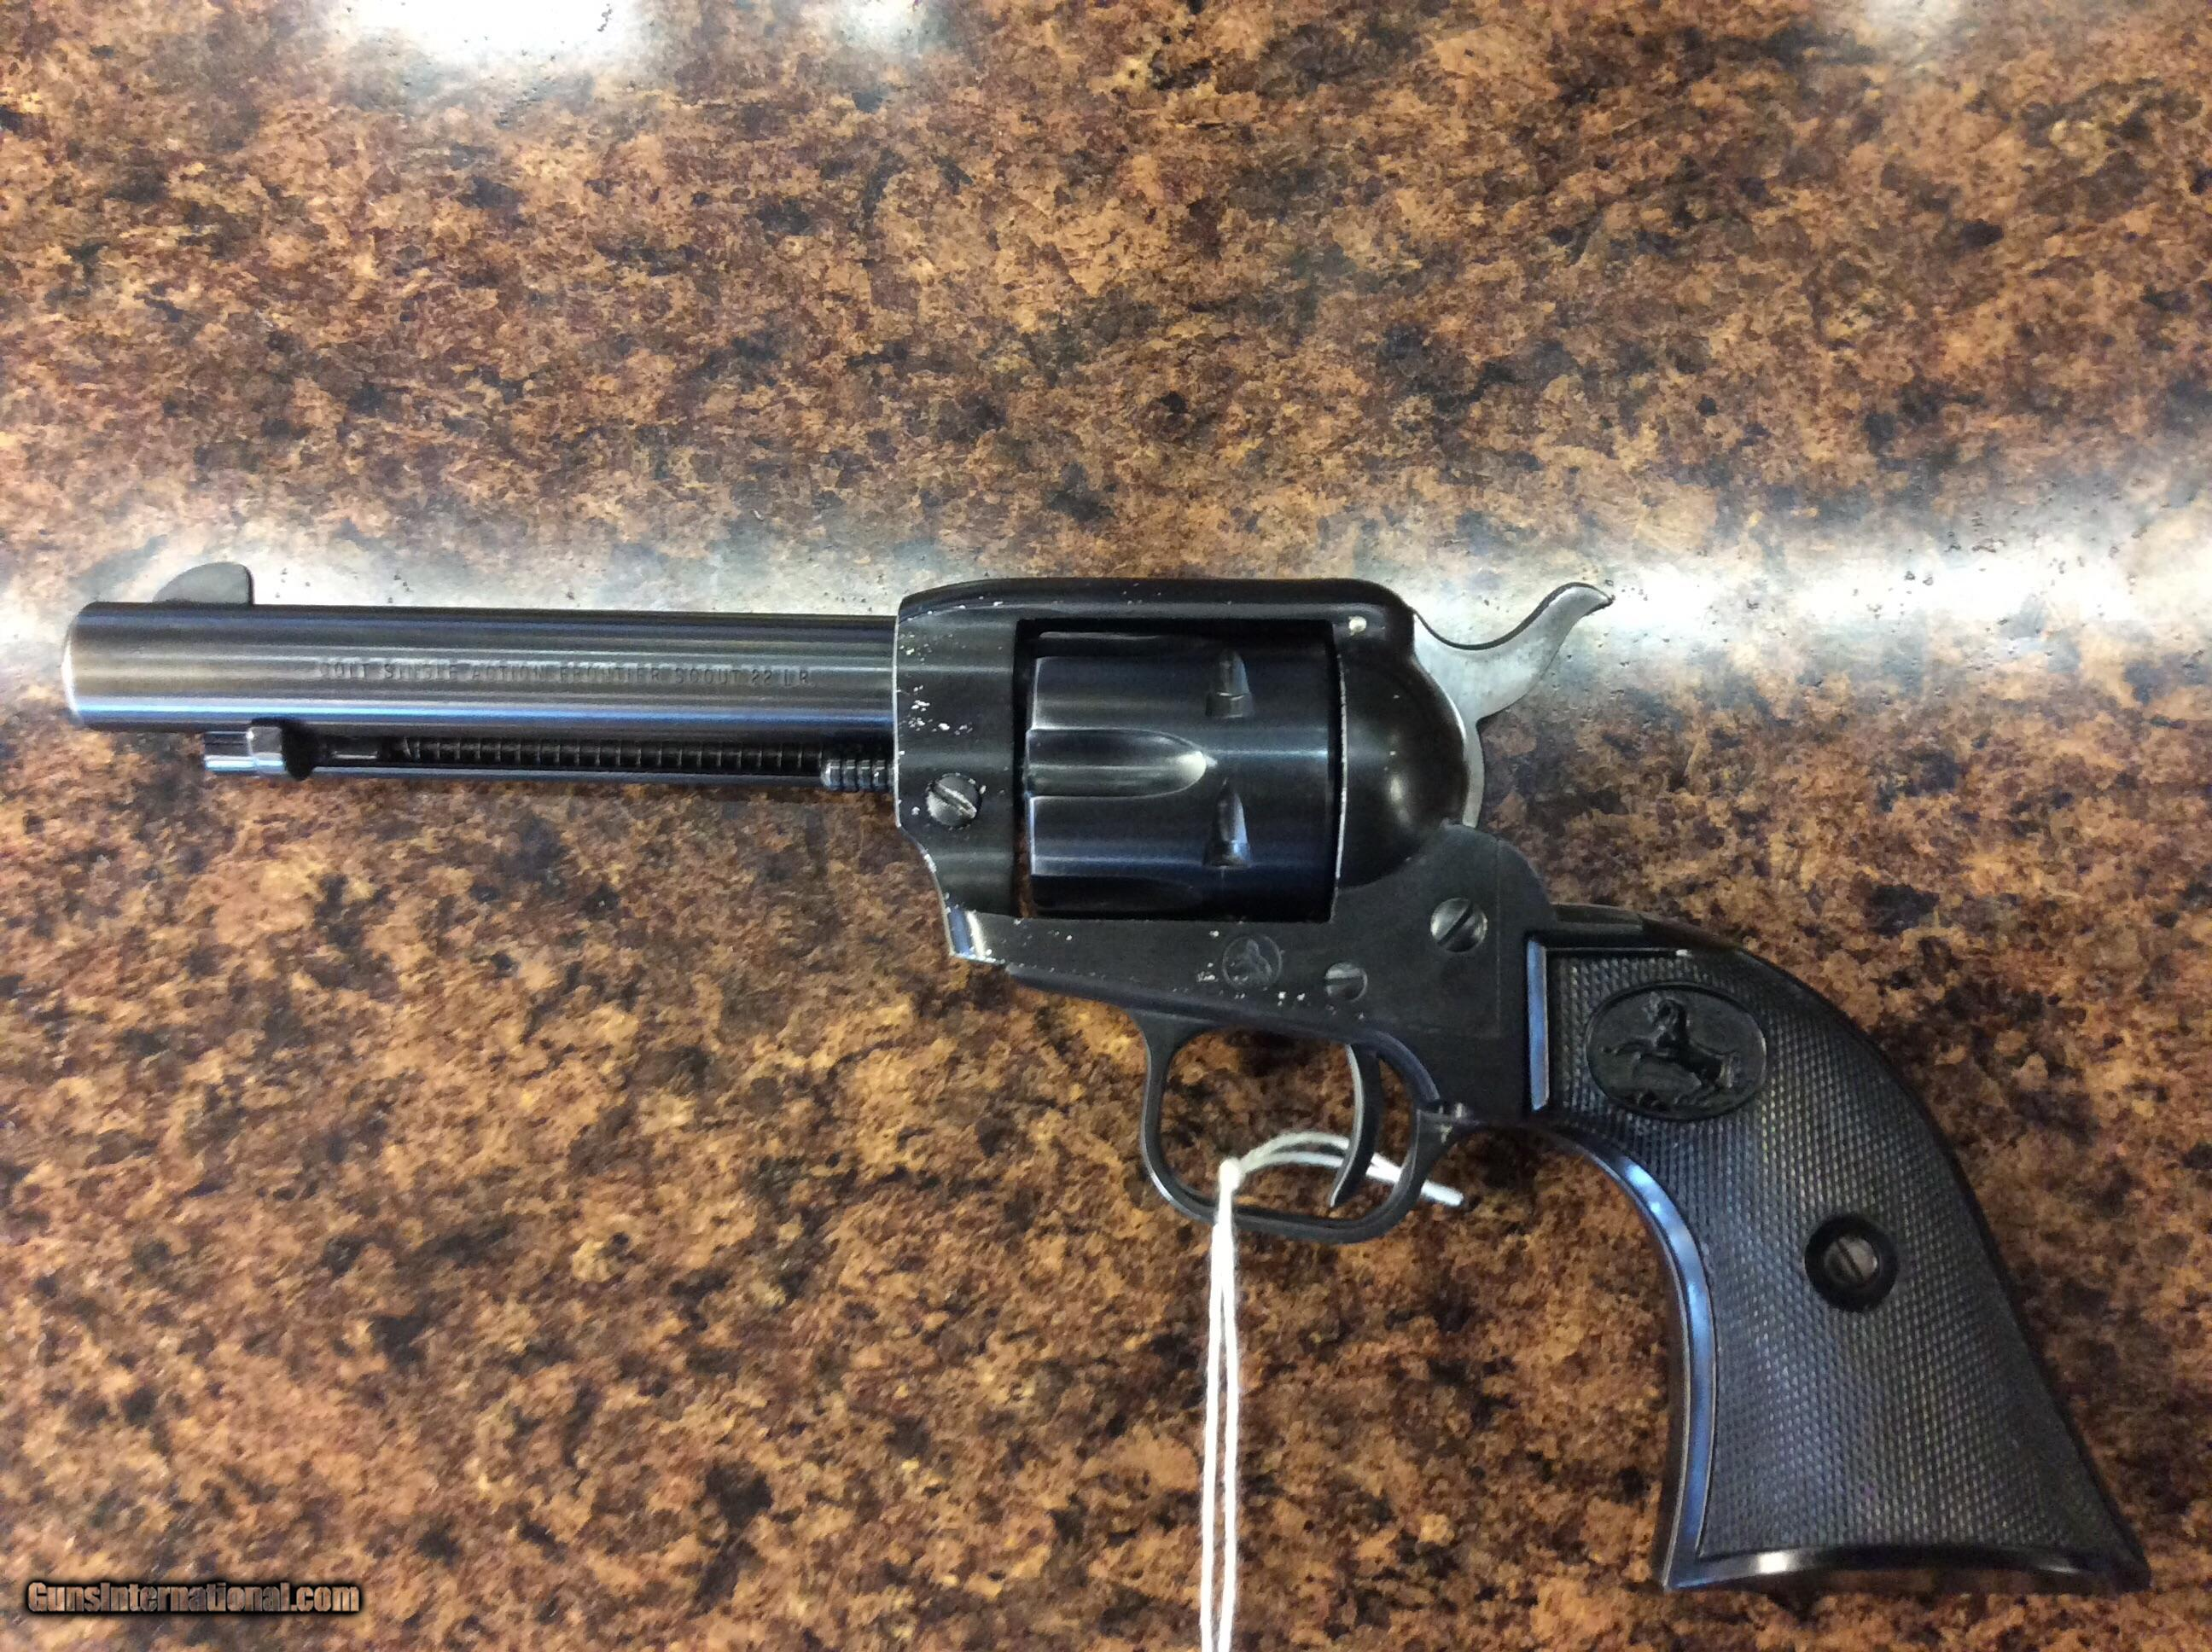 A classic single action Colt revolver